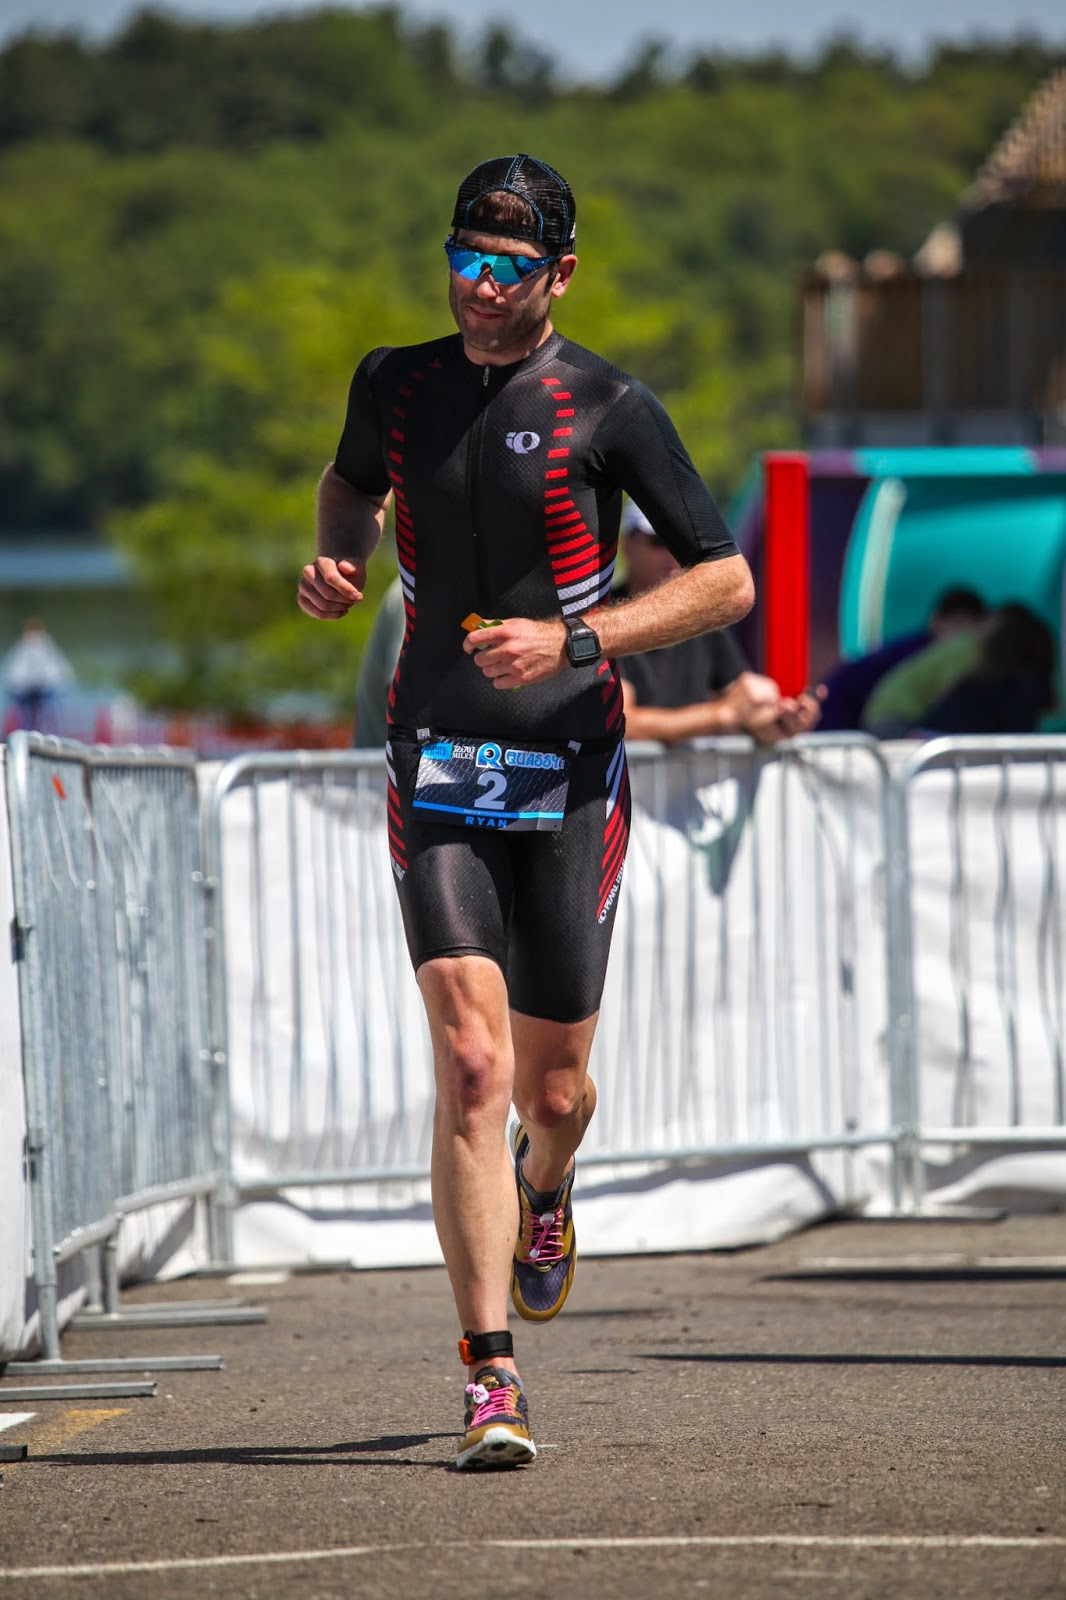 rev3tri quassyct 011729 The Hook Brings You Back: 171 Miles of Racing in 8 Days Report